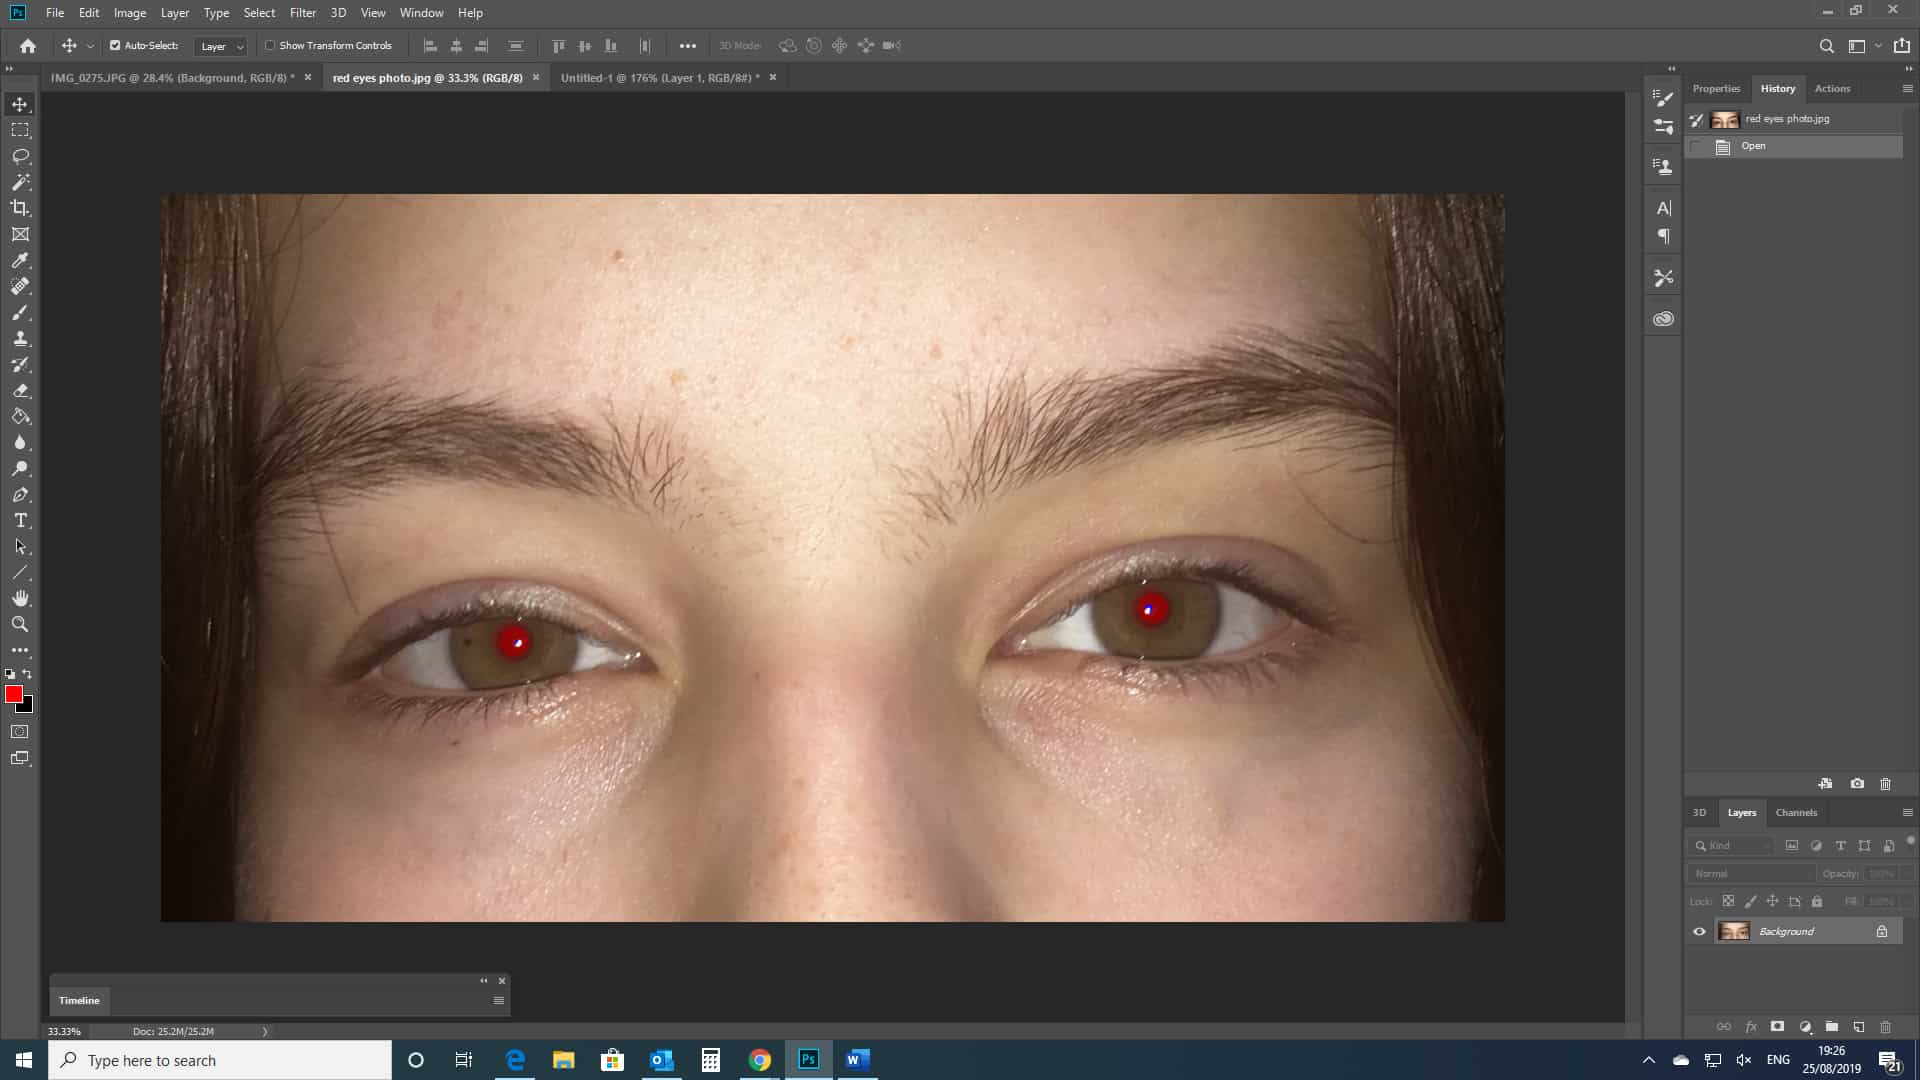 red eyes photograph open in photoshop